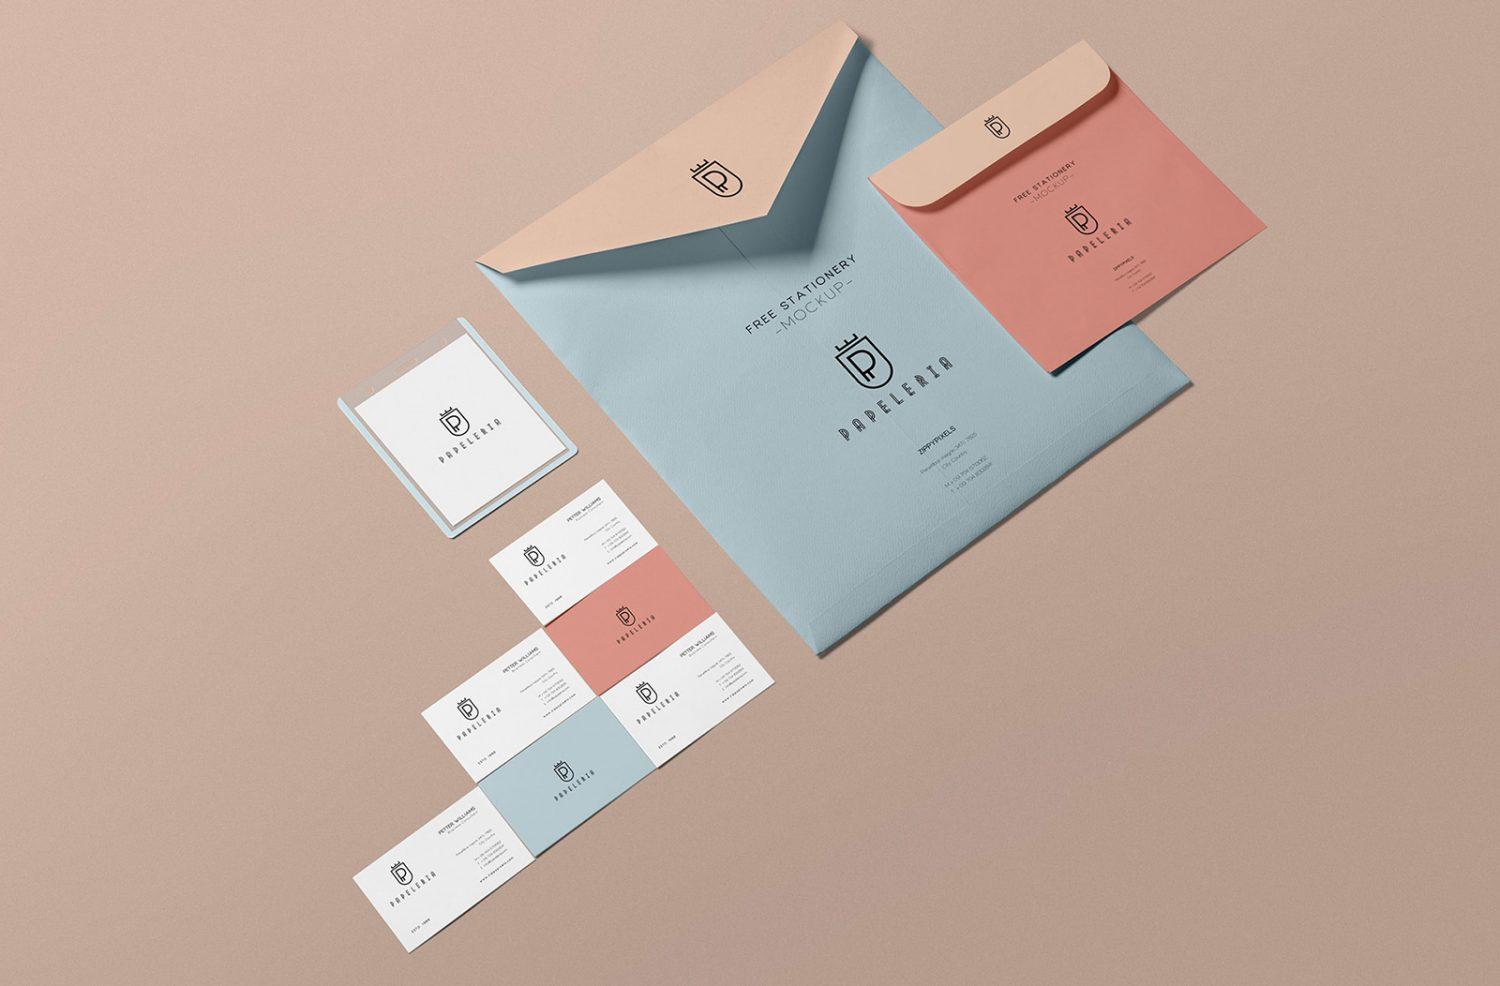 Free Envelope Stationery Mockup PSD